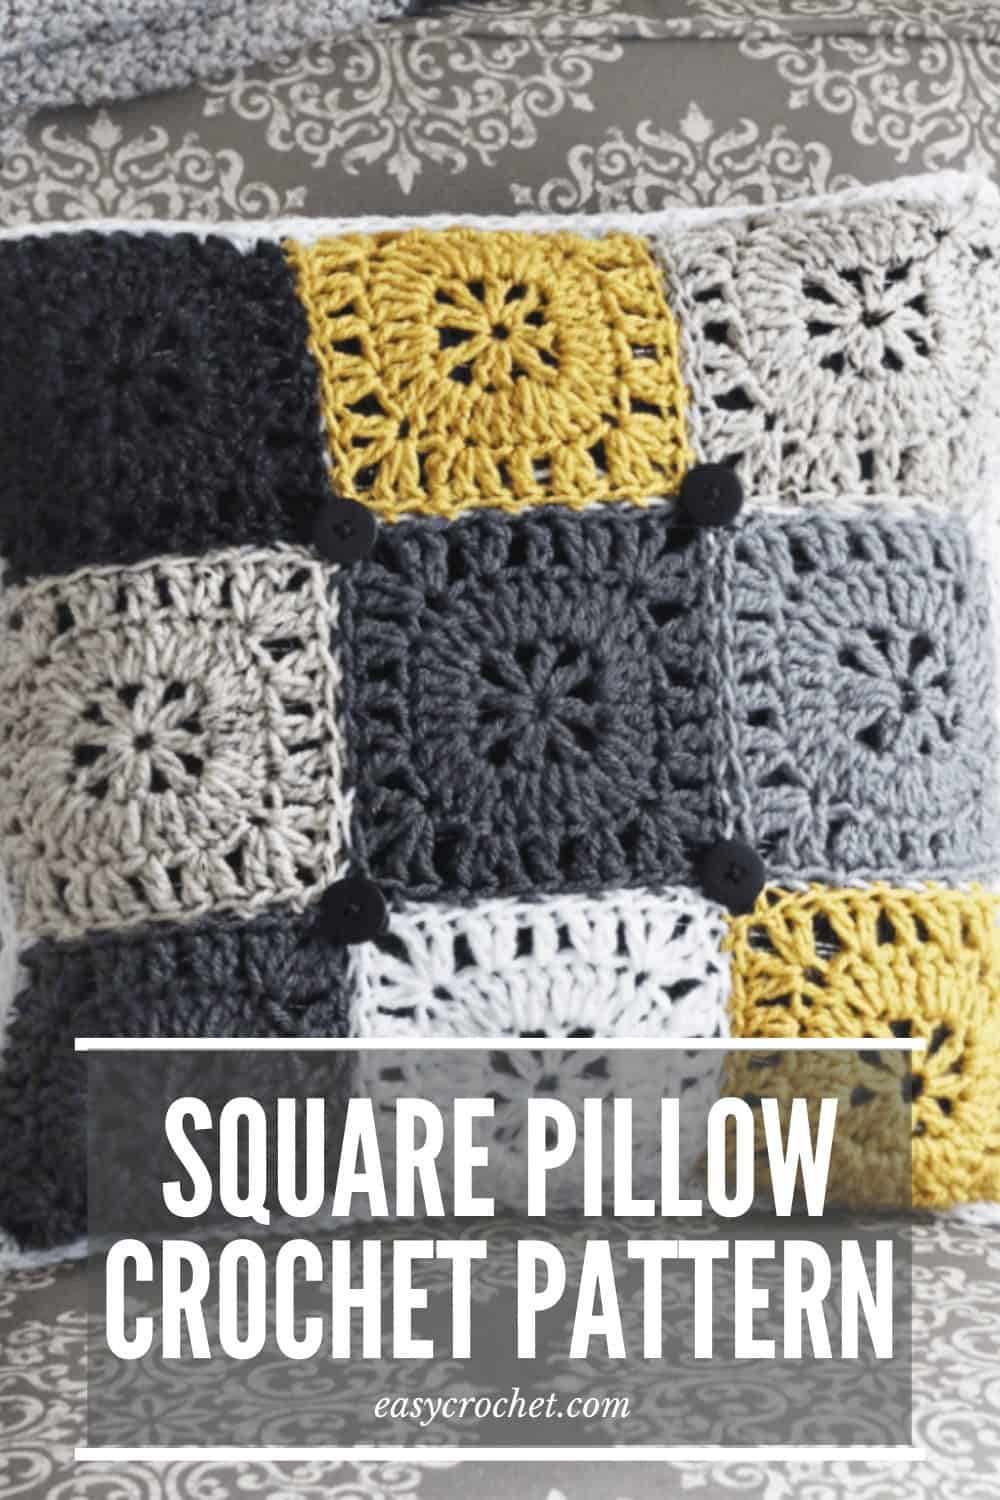 Square Pillow Crochet Pattern by Easy Crochet via @easycrochetcom